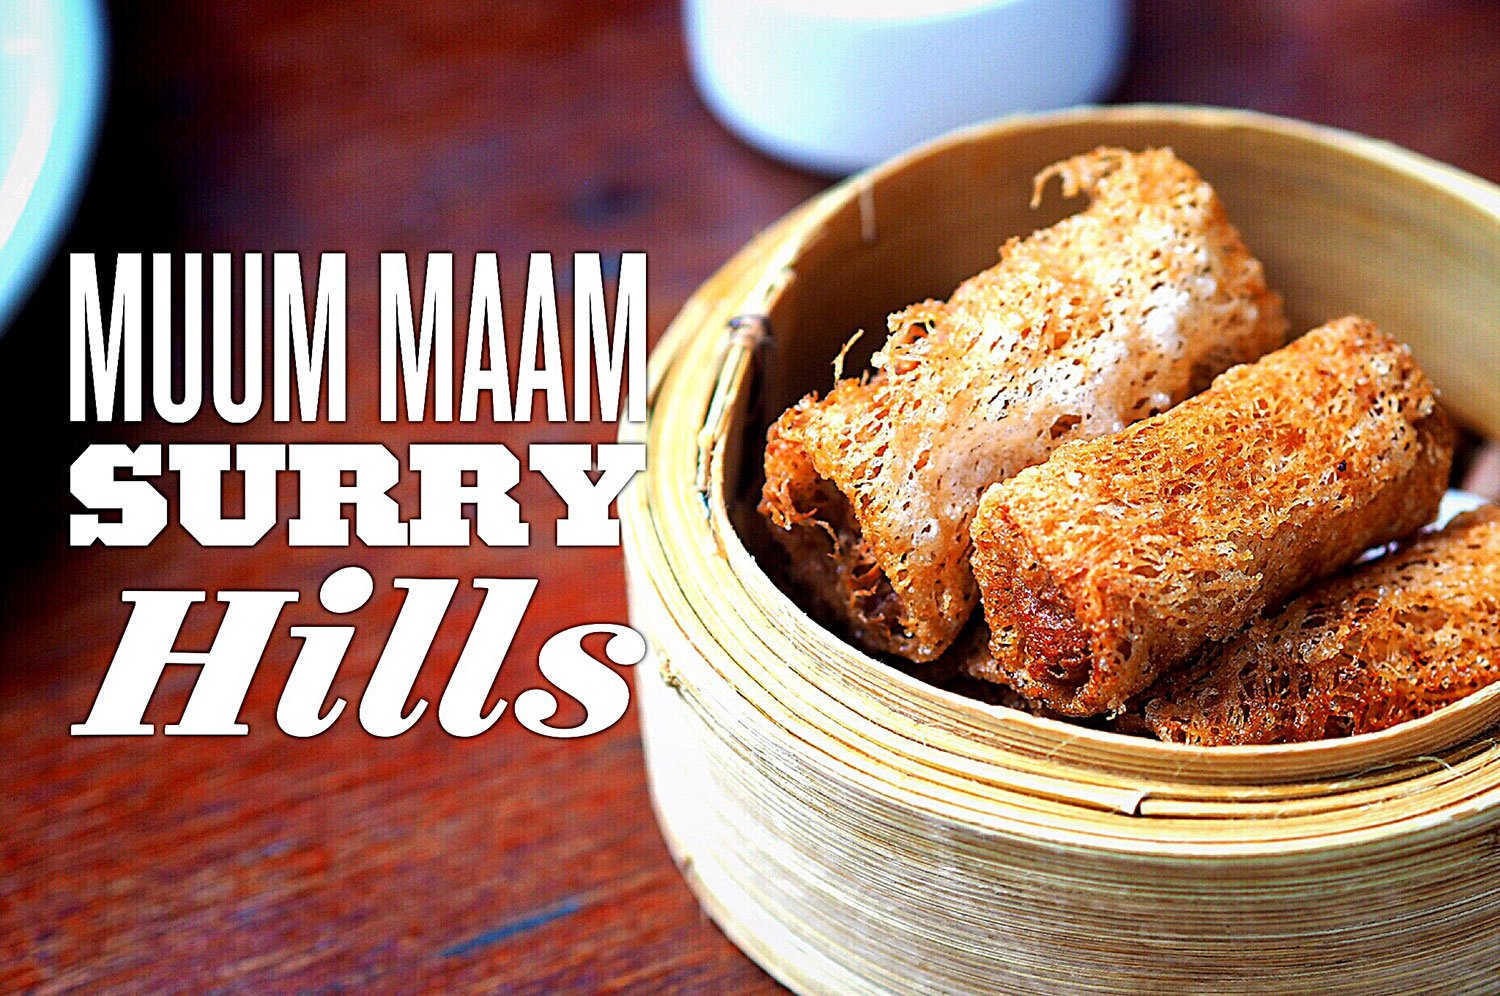 Sydney Food Blog Review of Muum Maam, Surry Hills